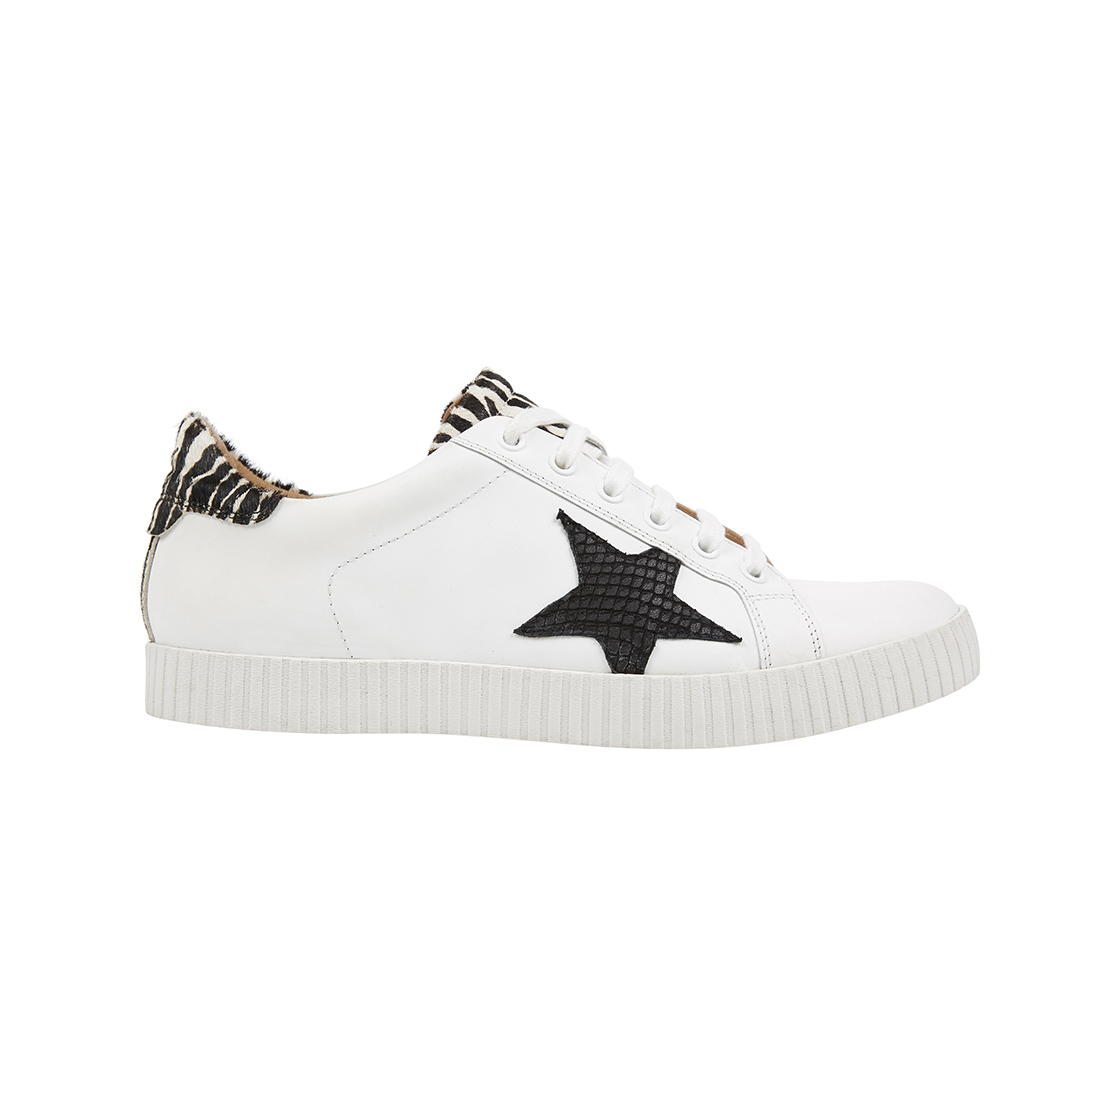 Trainers, £45